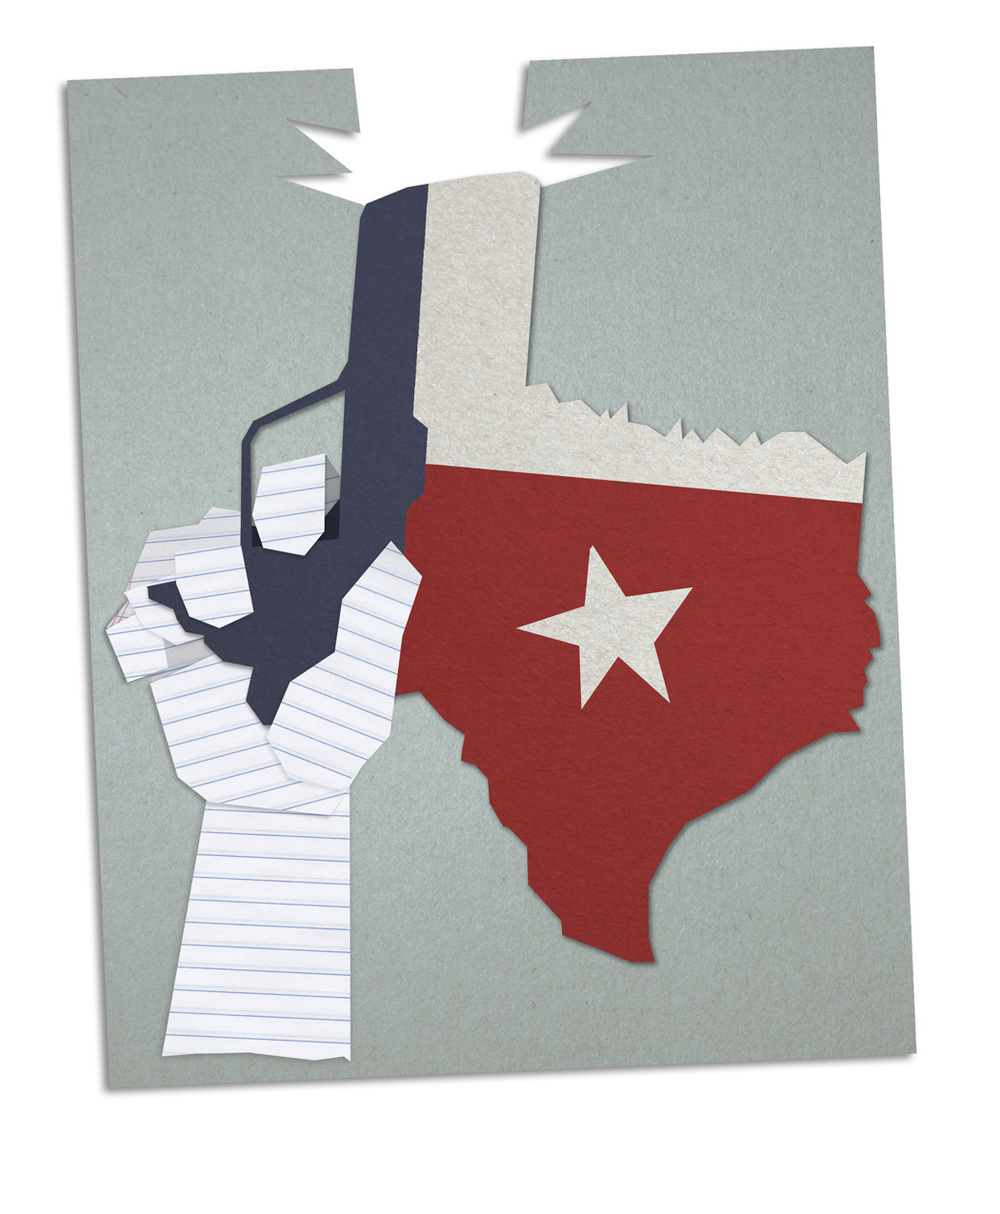 Illustration for the  Daily Trojan;  article on Texas colleges' new concealed-carry laws